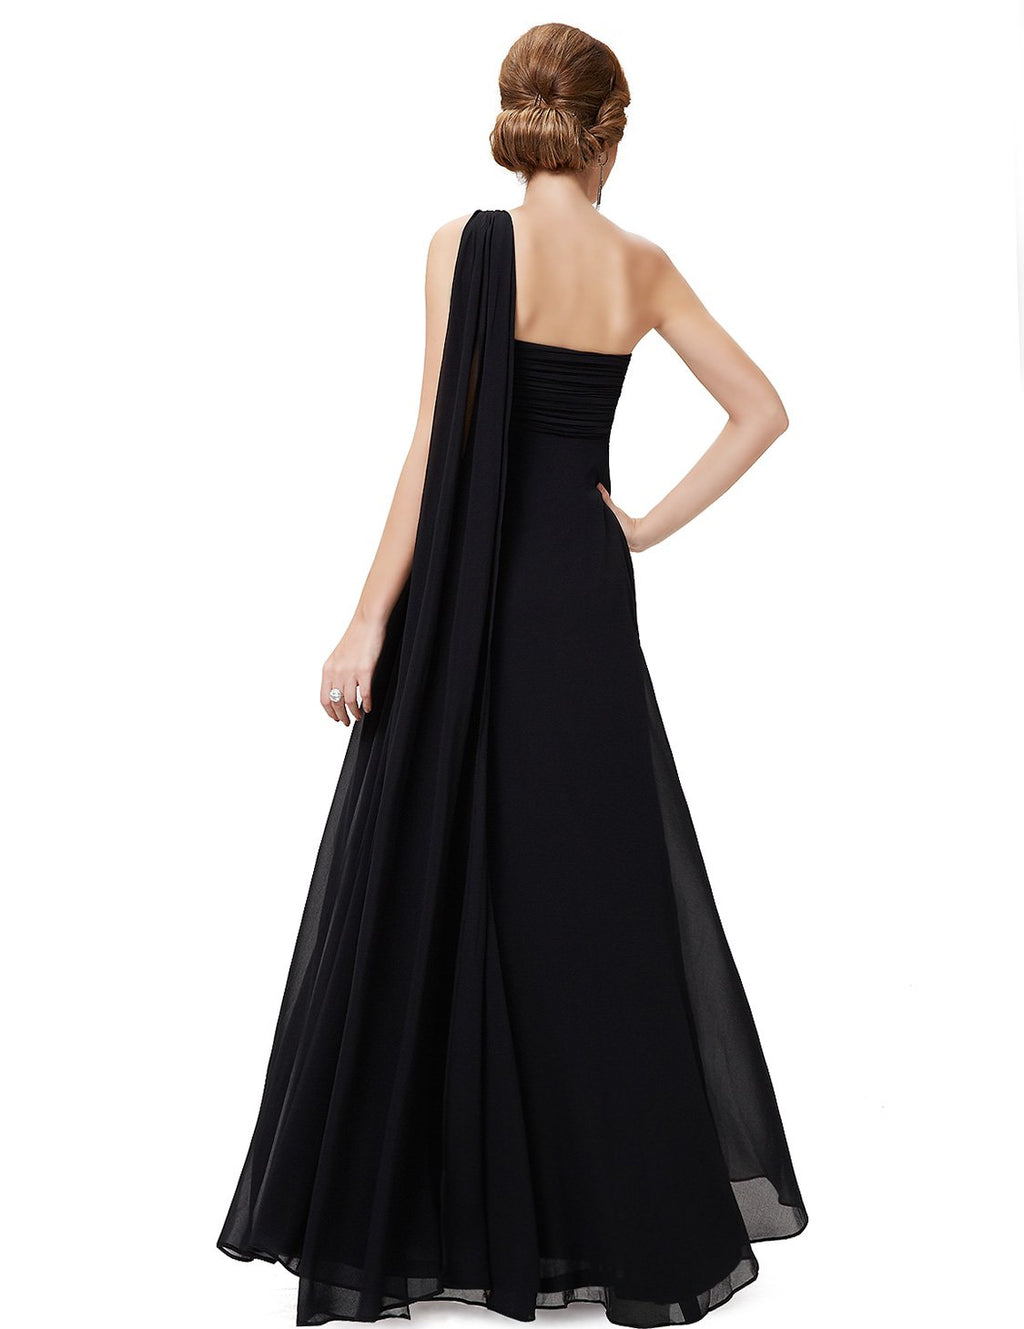 One Shoulder Simple Long Party Dress Black